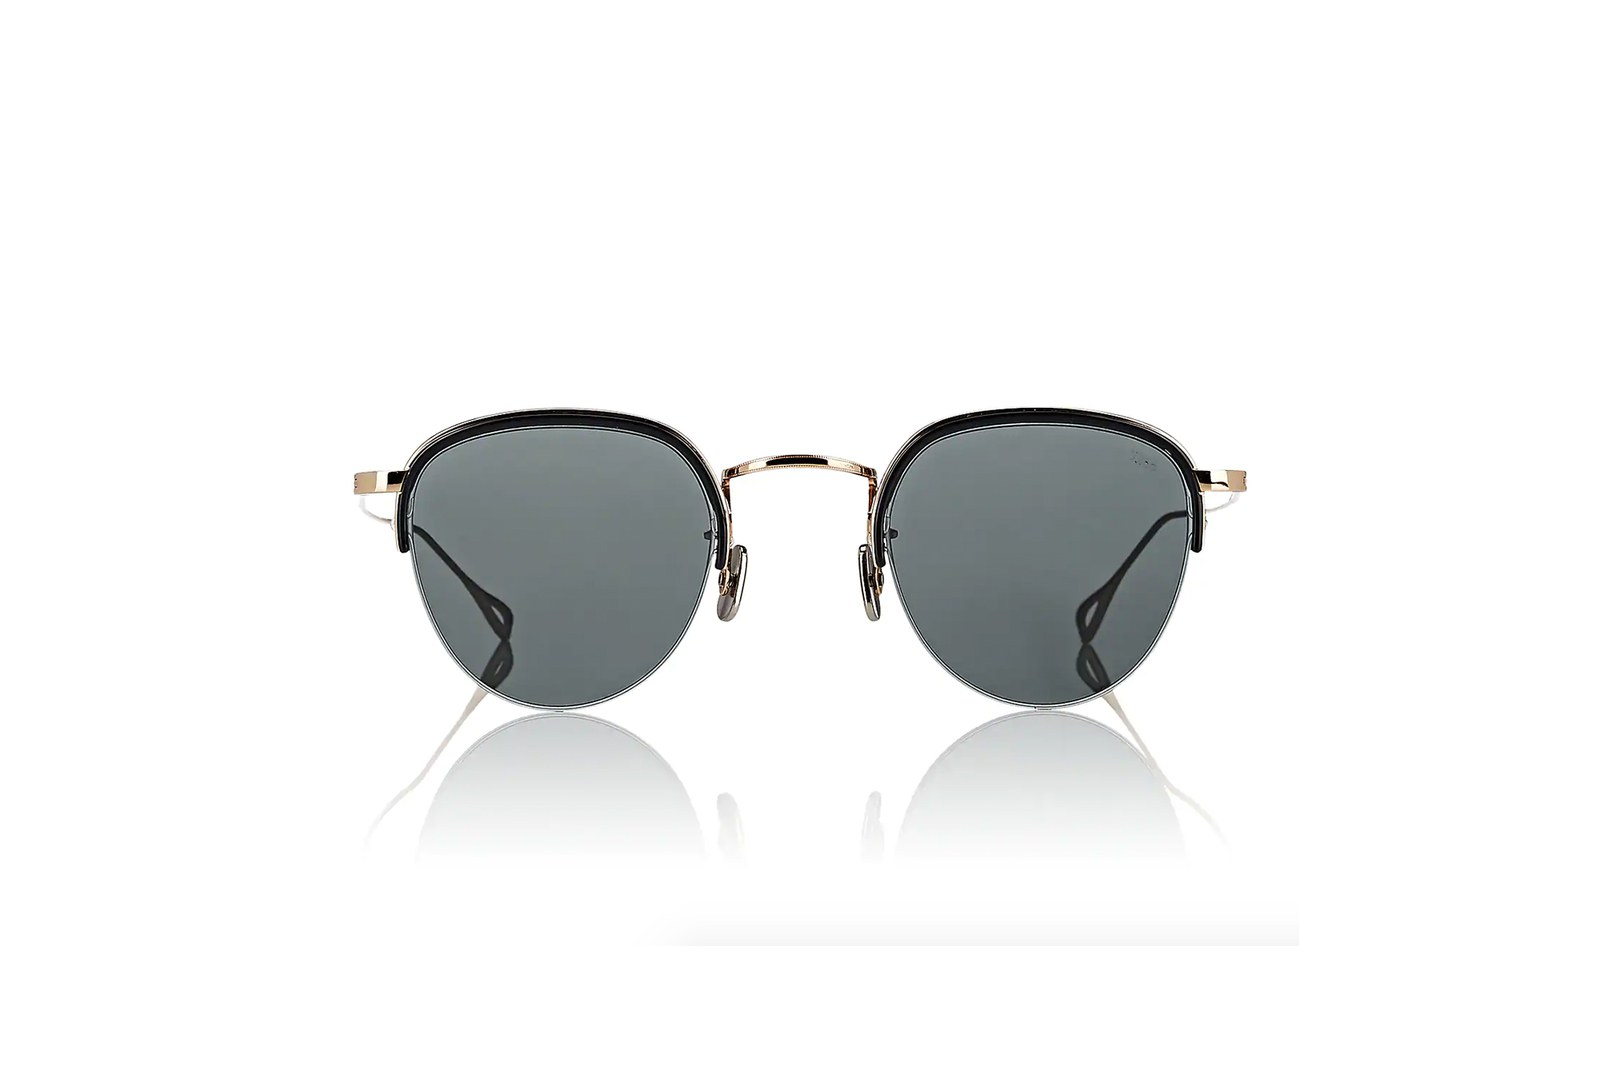 Kính eyevan 7285 Model 763 sunglasses